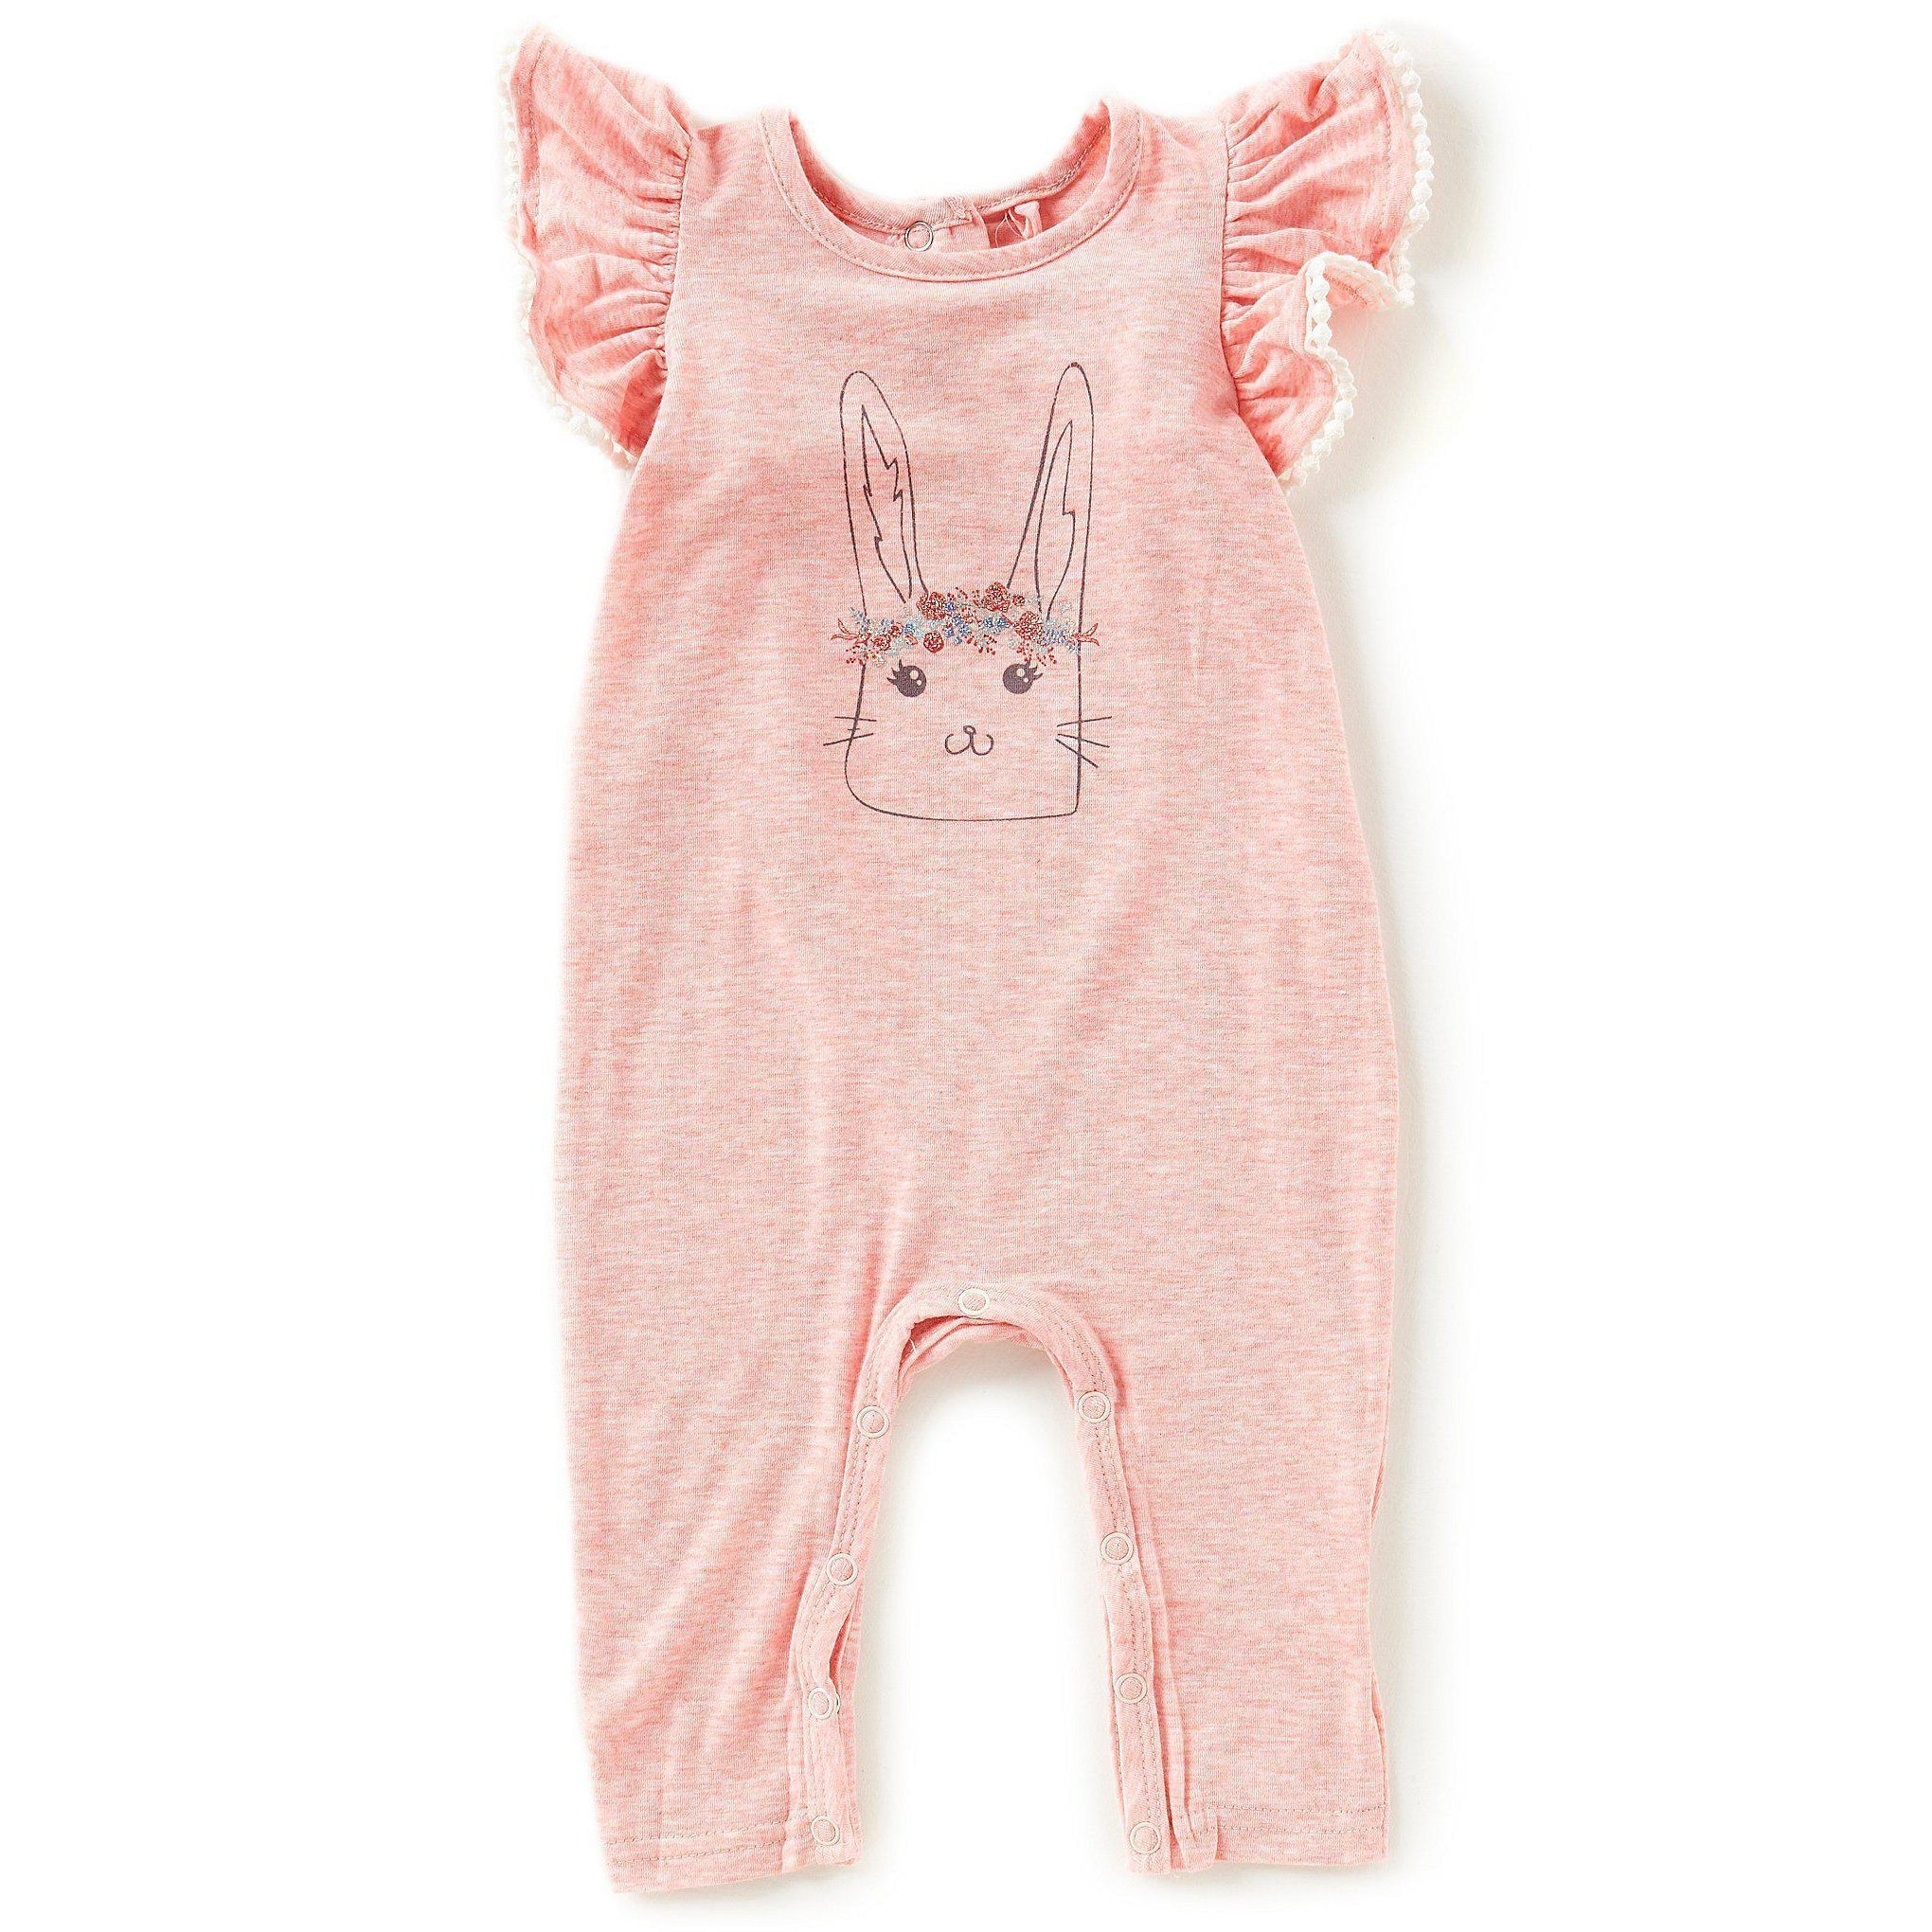 198abb1073c7 Heathered Coverall-Baby Girl Apparel - Rompers-Jessica Simpson-0-3M-